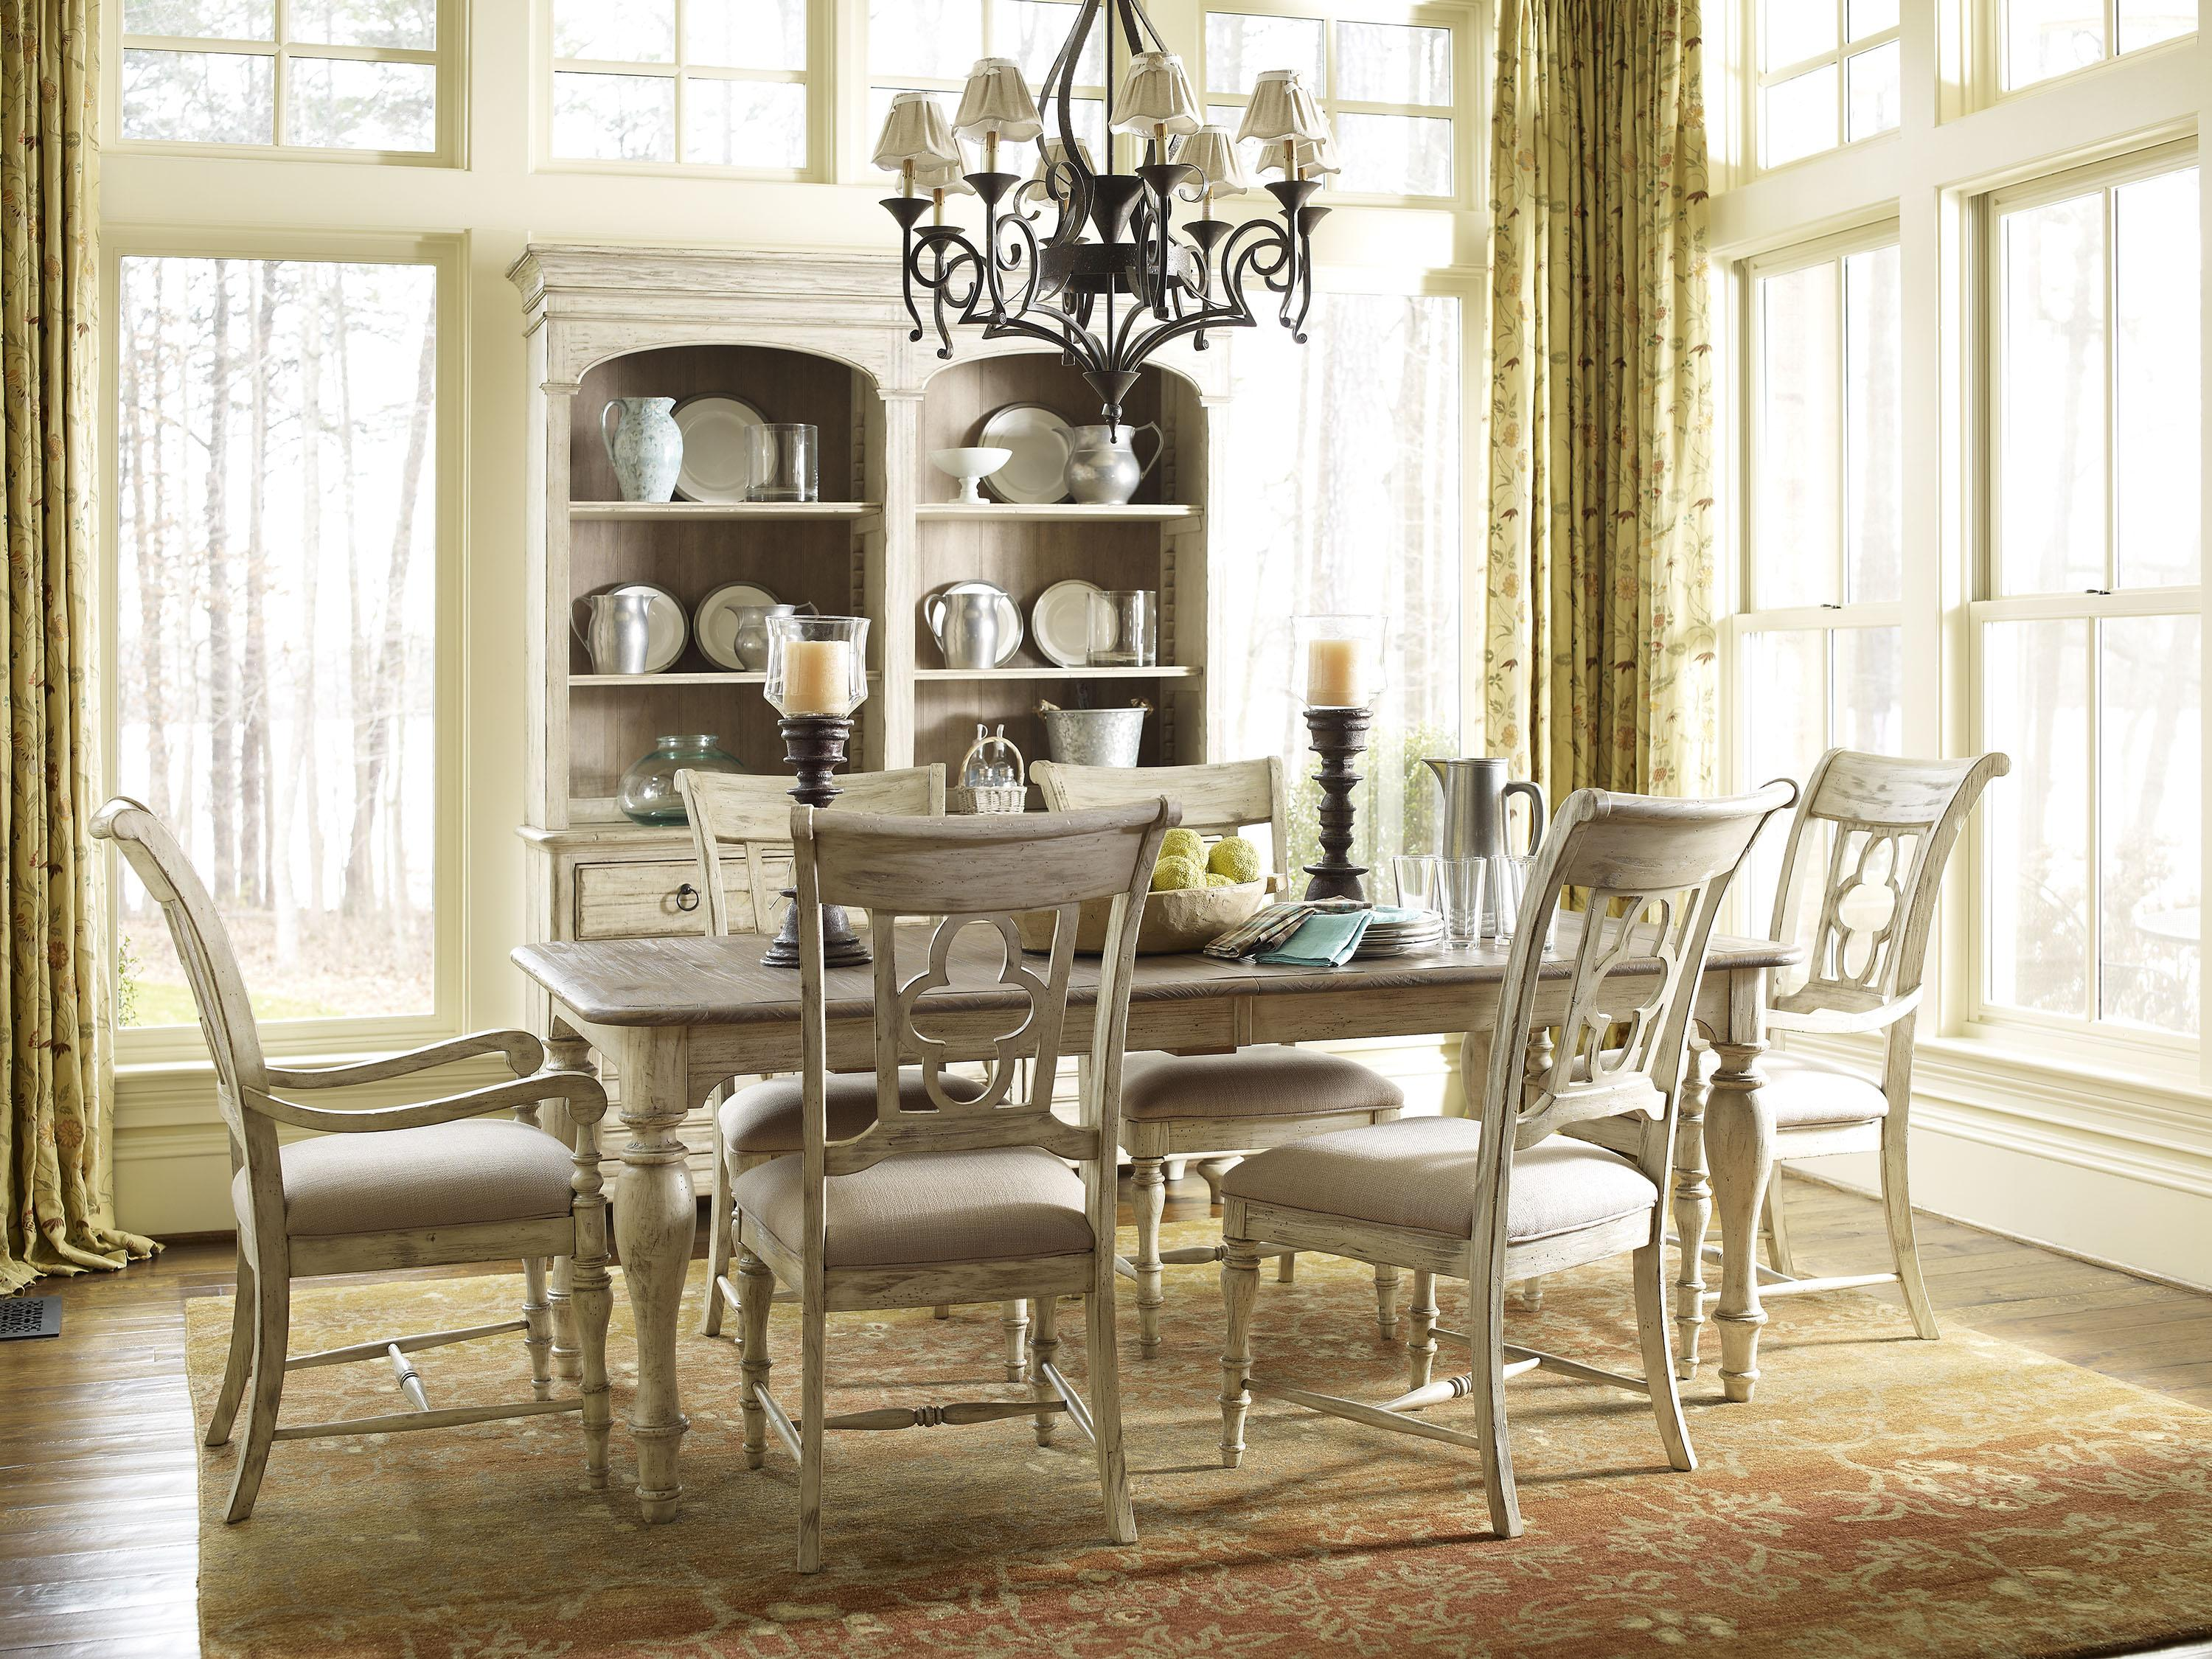 Kincaid Furniture Weatherford 7 Piece Dining Set - Item Number: 75-054+2x75-062+4x75-061